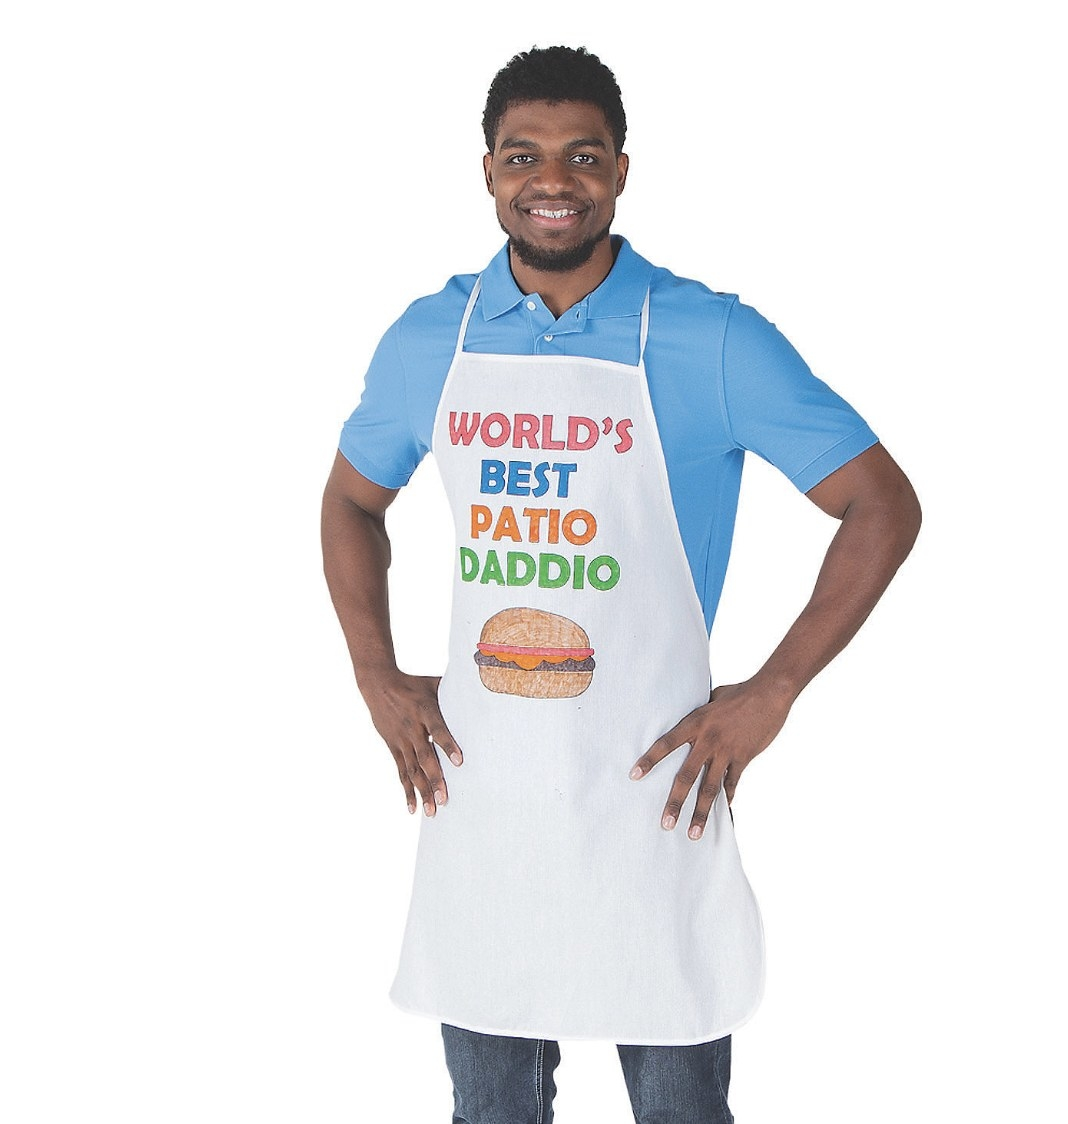 """There is an adult wearing a white apron that says """"WORLD'S BEST PATIO DADDIO"""" with a hamburger underneath"""